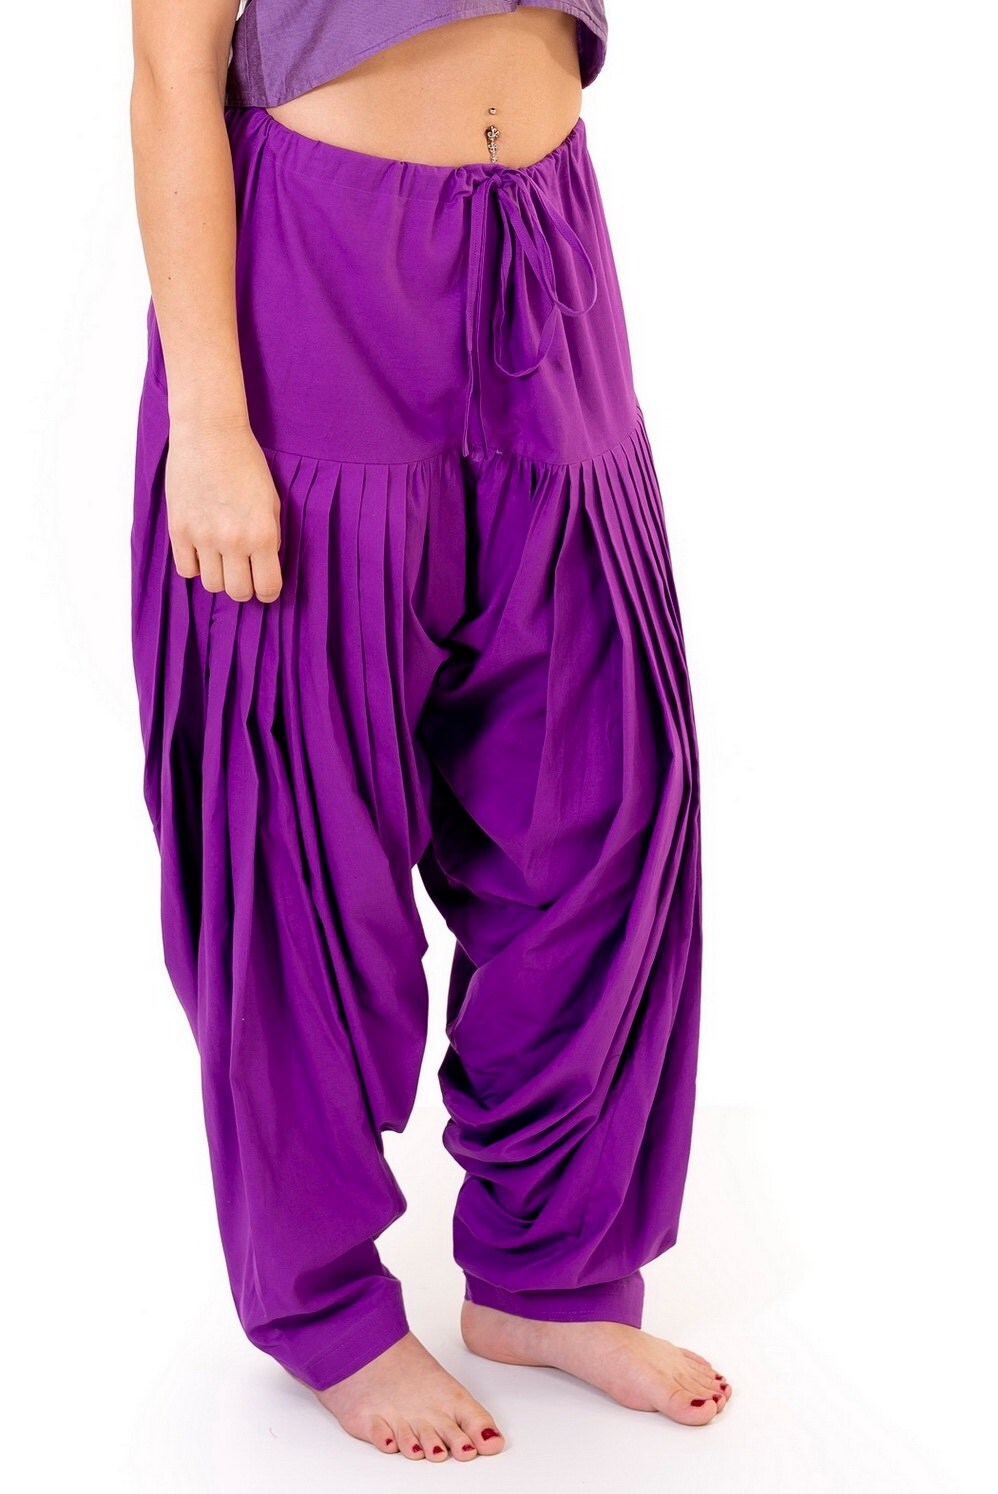 Amazing Details About Women Indian Trousers Yoga Harem Aladdin Pant Casual